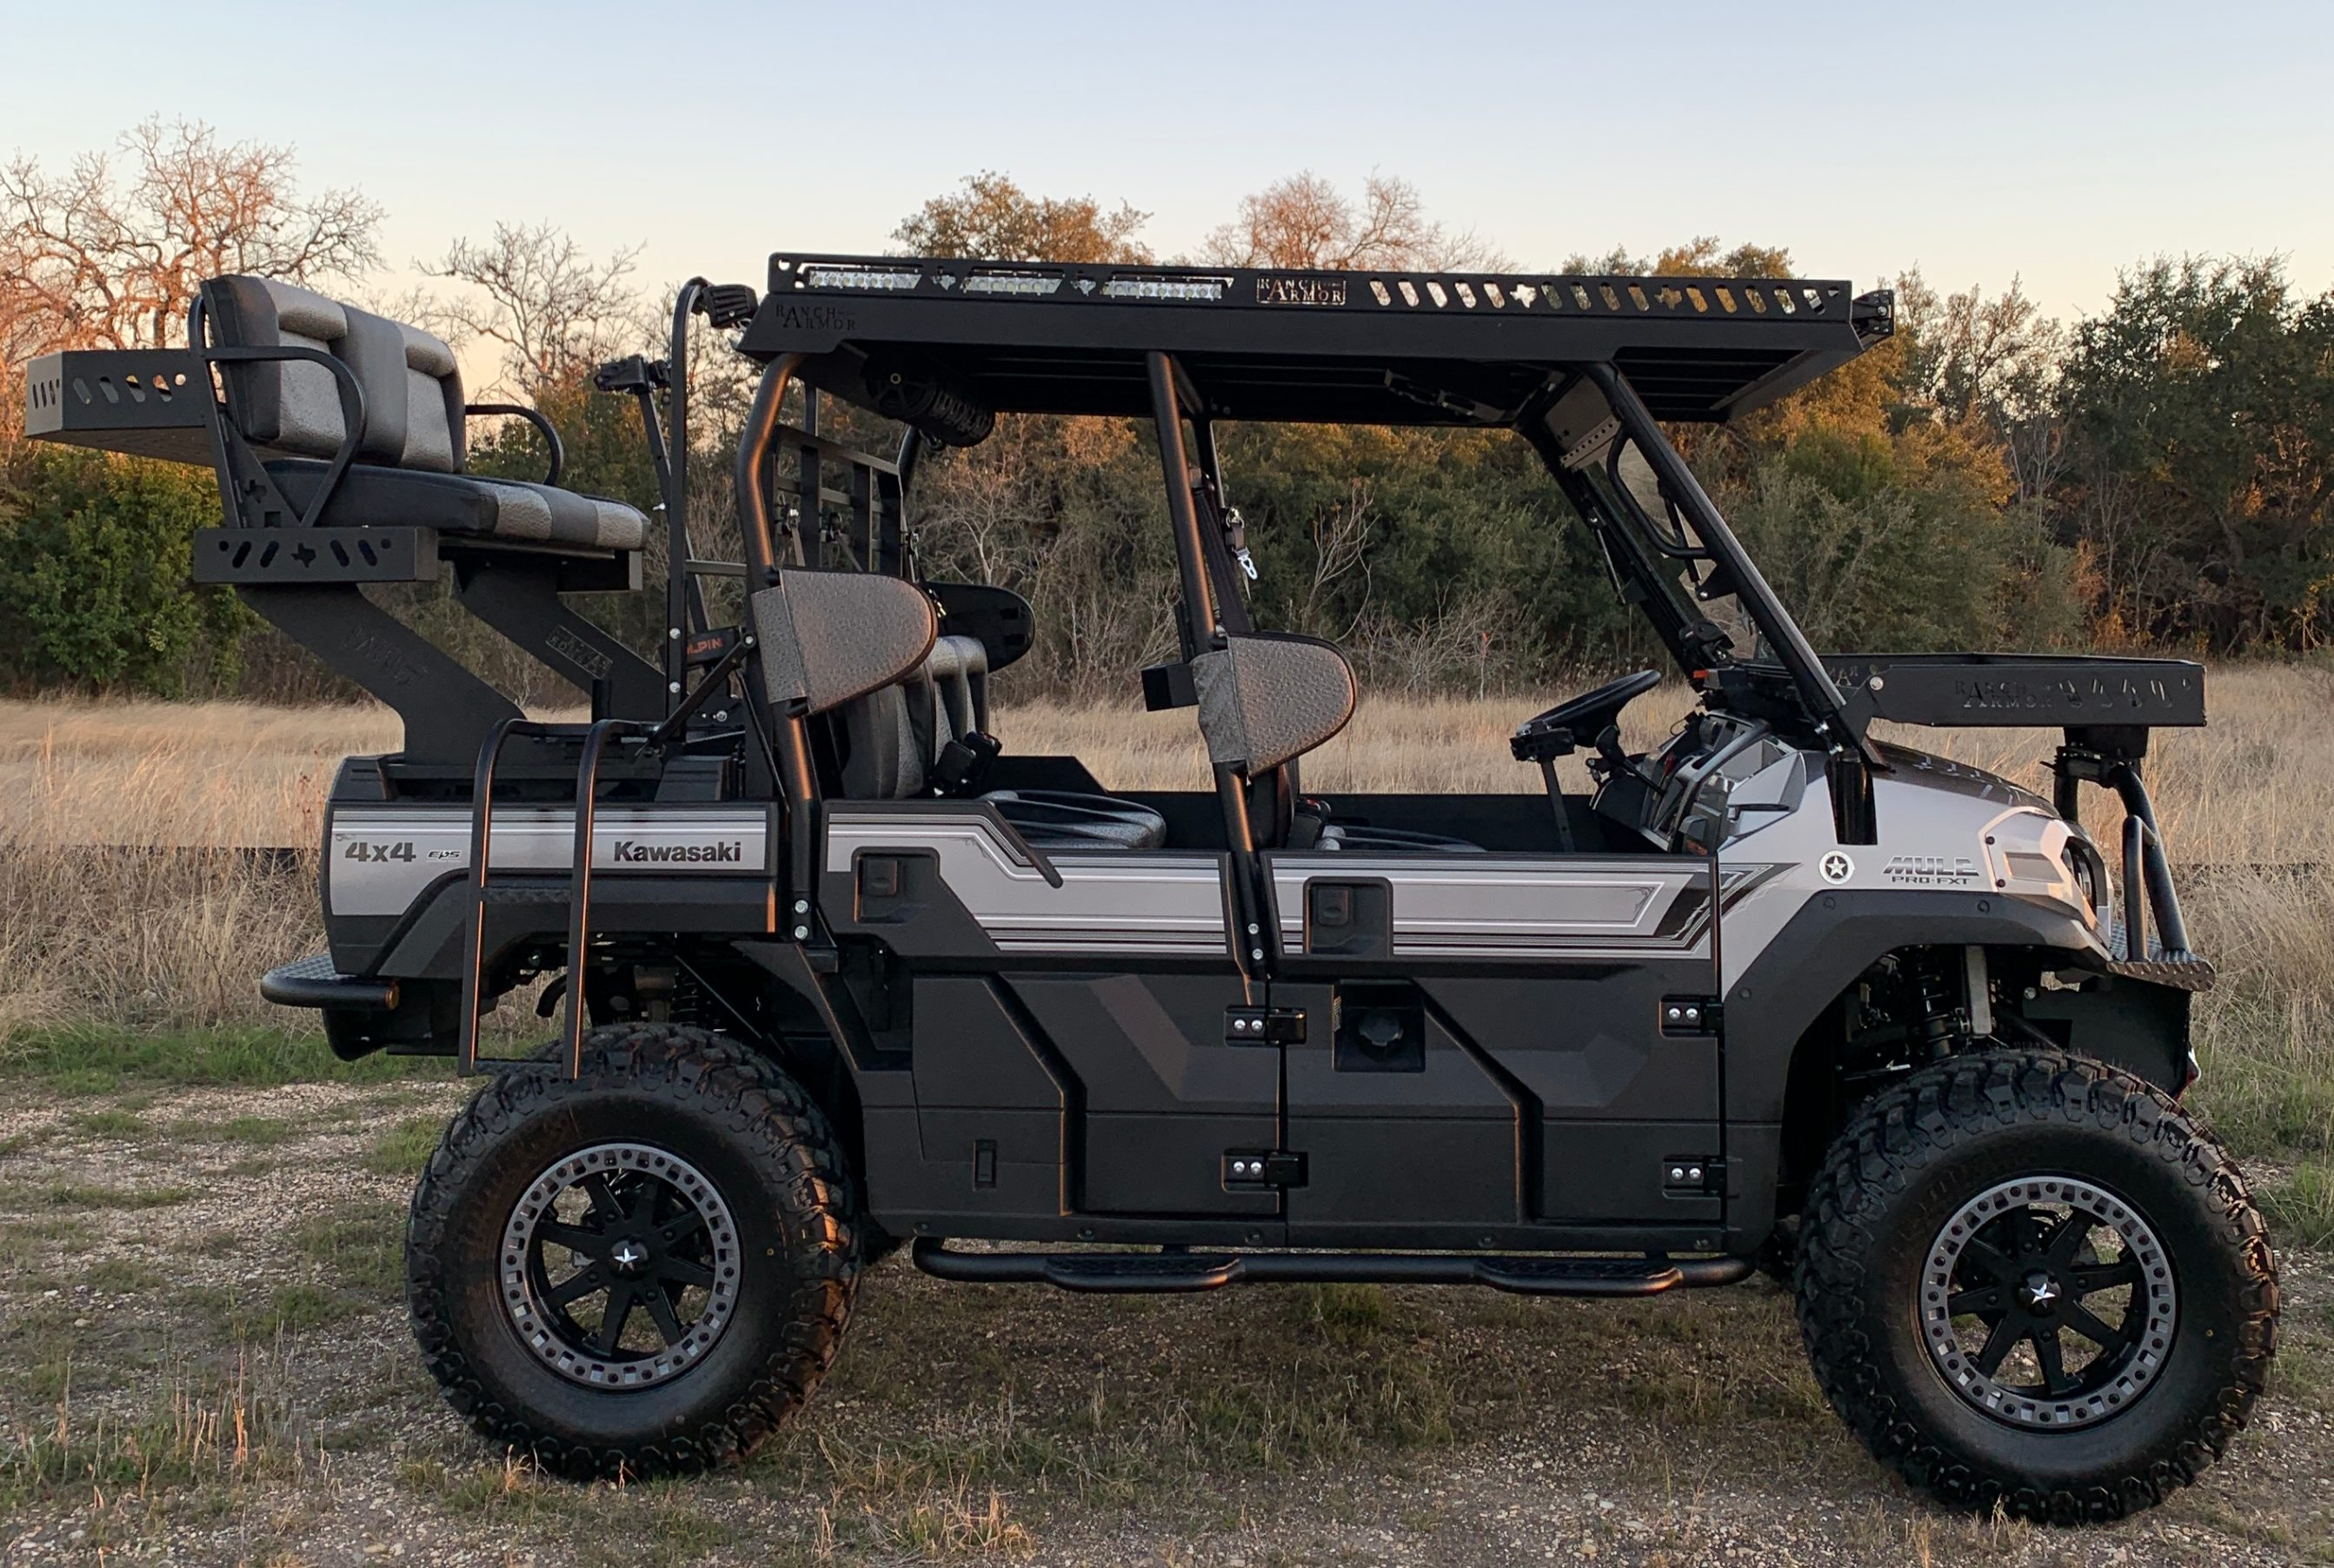 kawasaki-mule-pro-fxt-outfit-project-bullet-by-ranch-armor.jpg